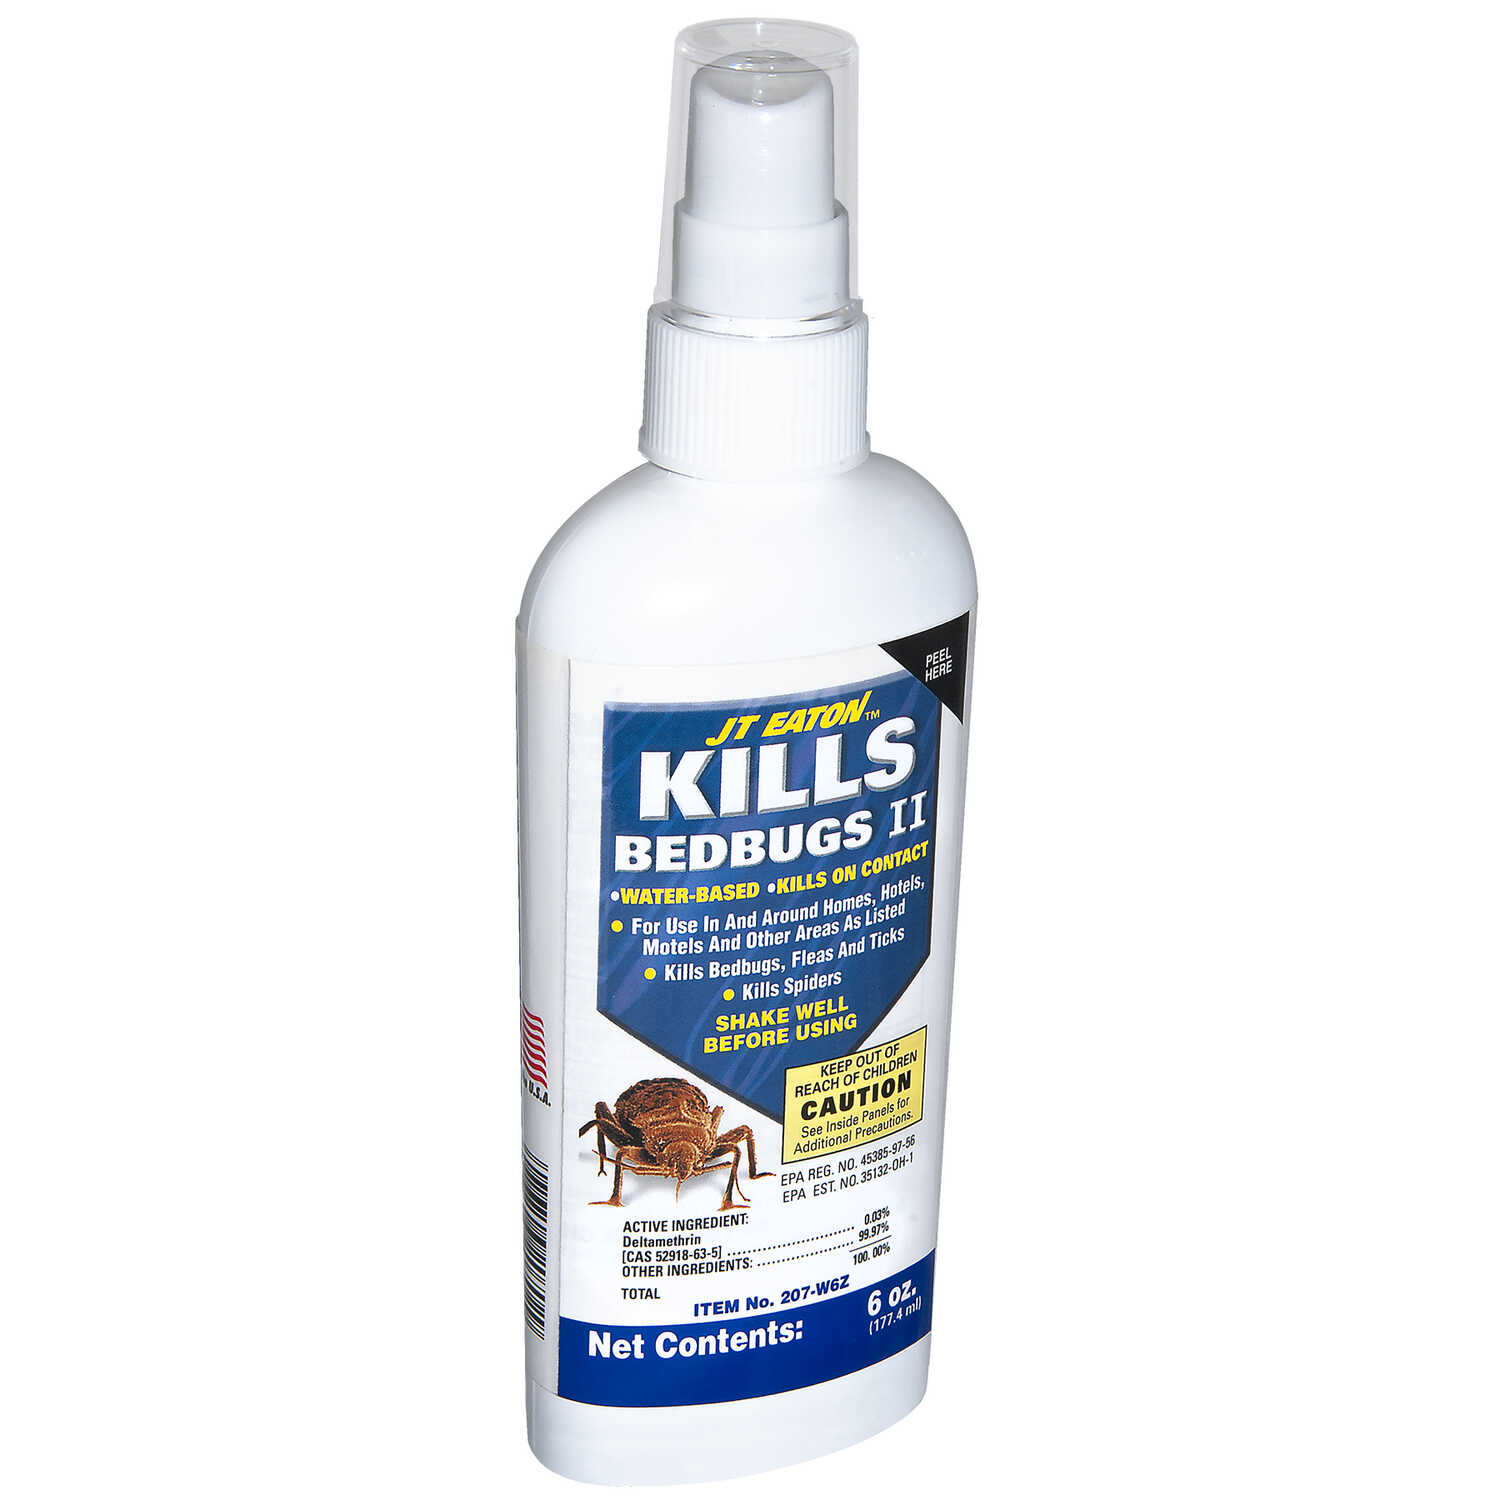 JT Eaton  KILLS II  Insect Killer  6 oz.